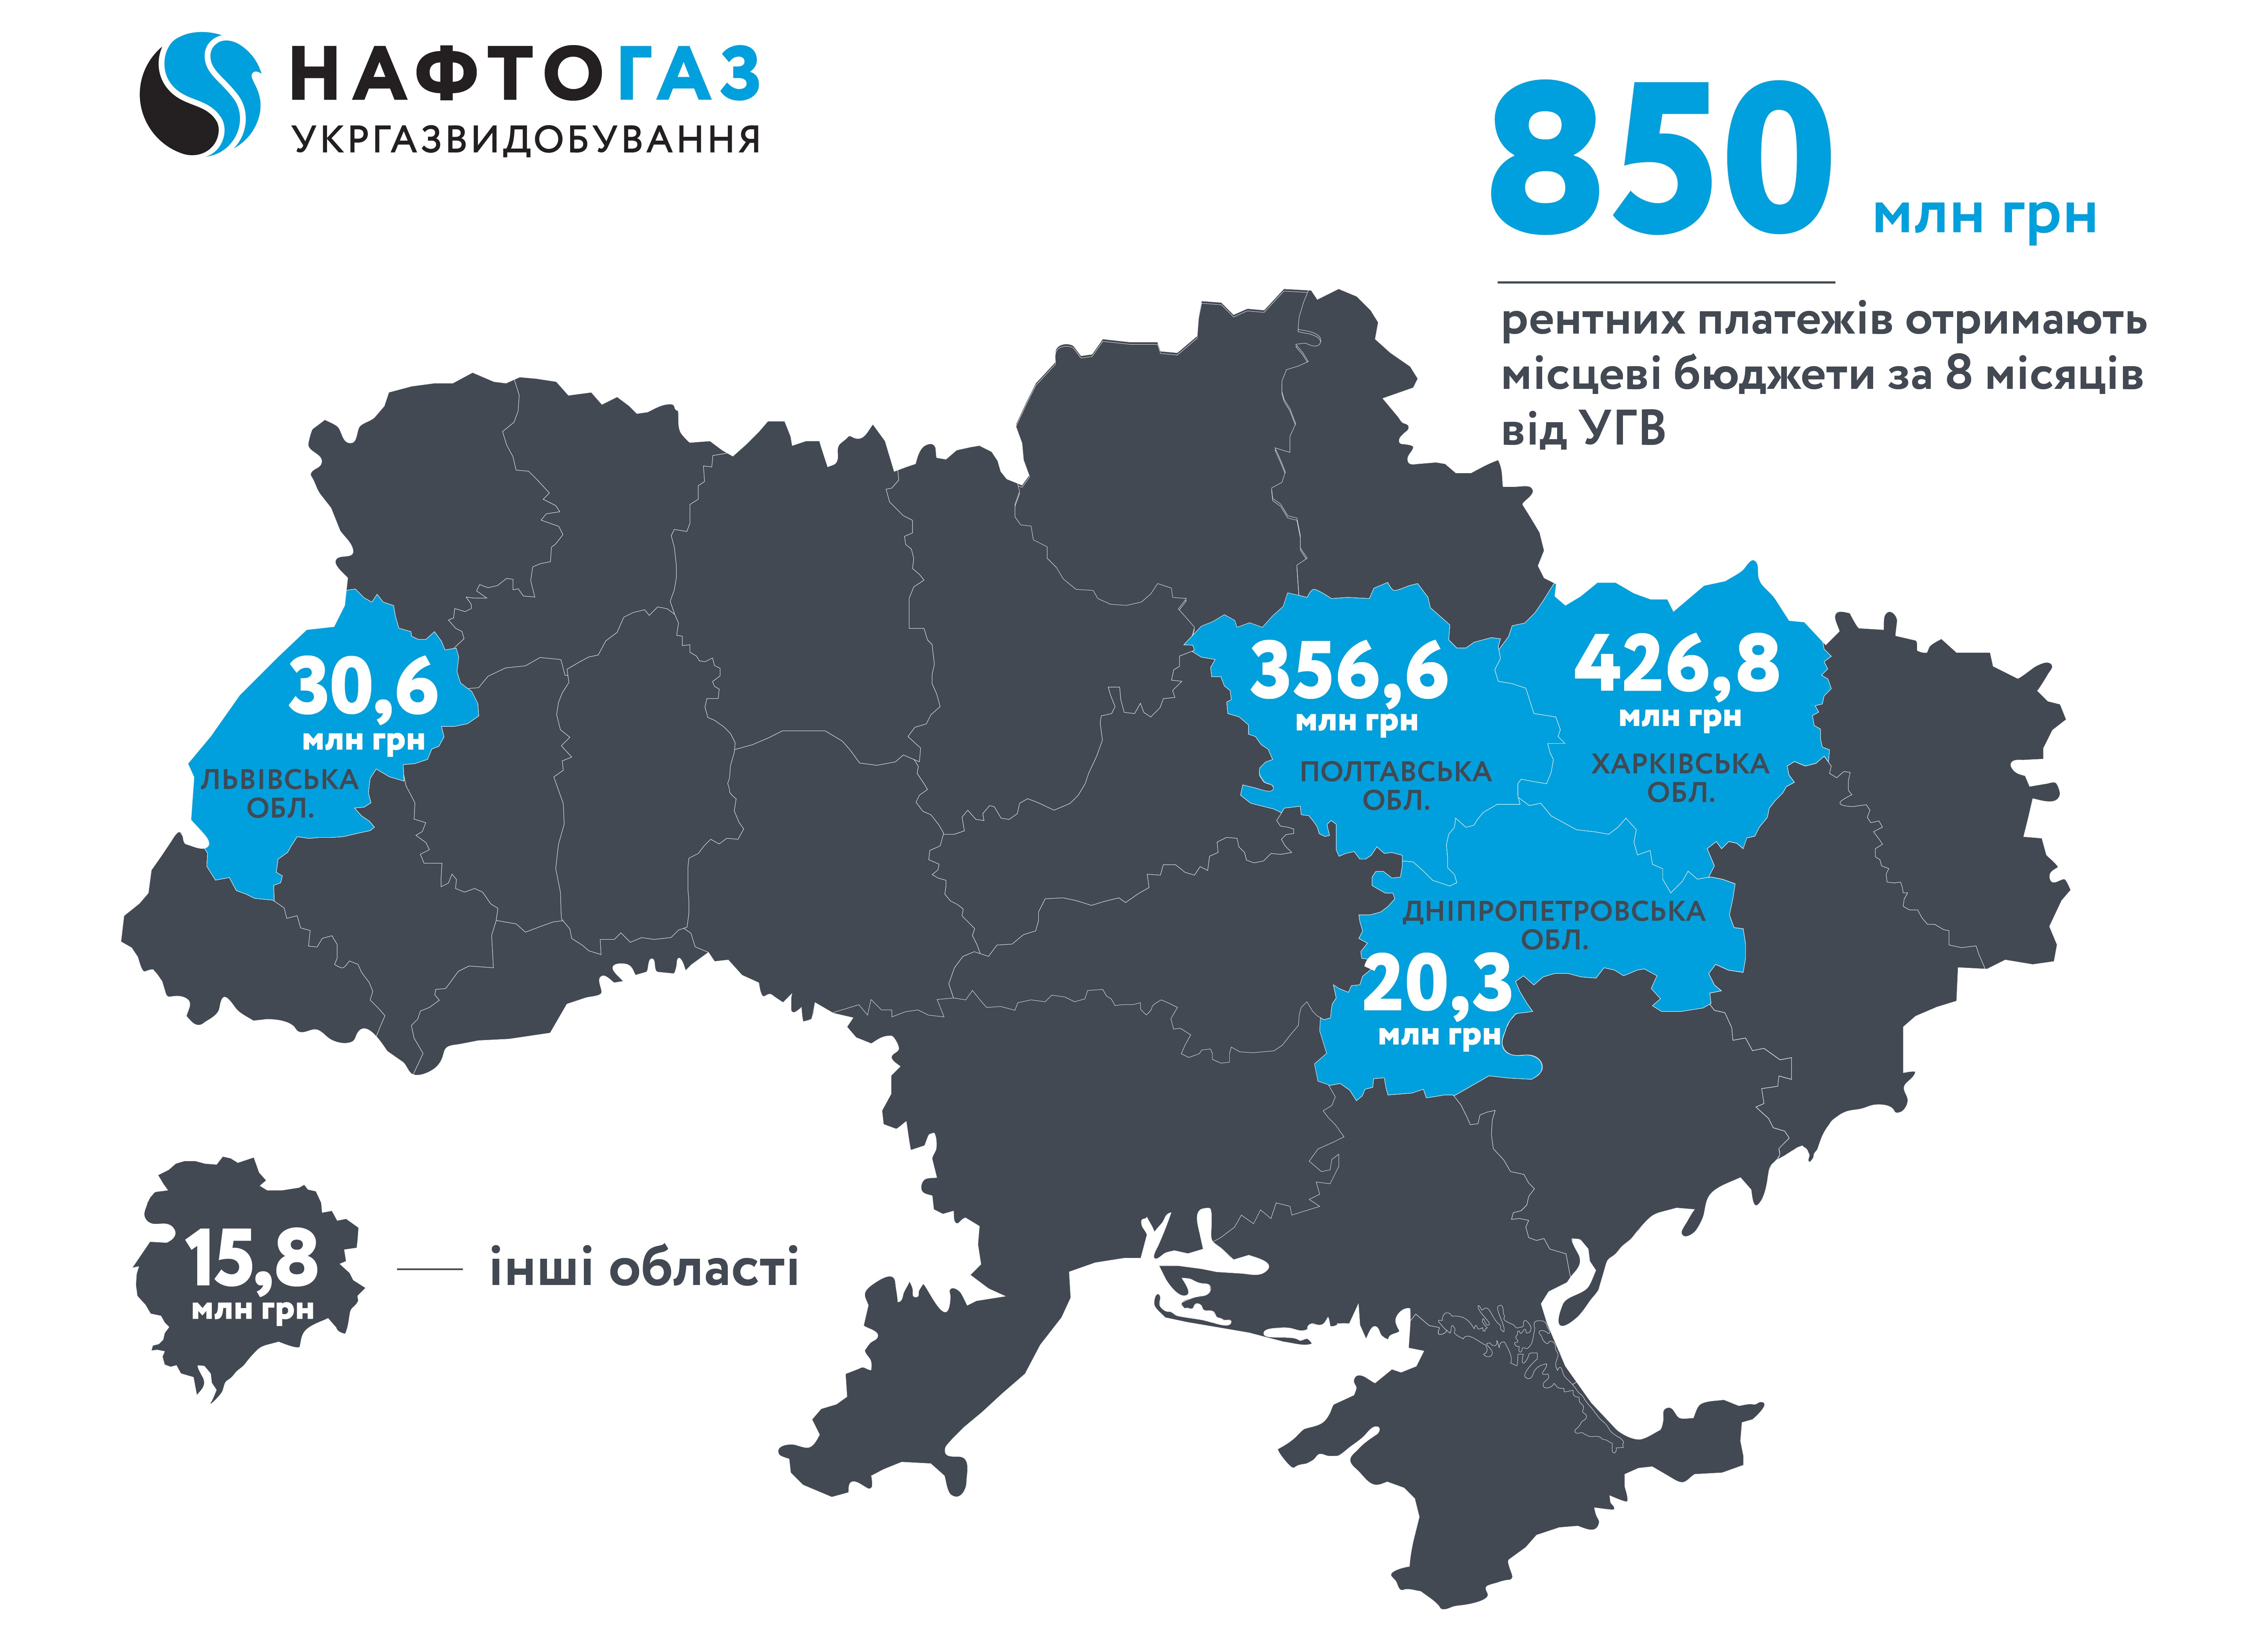 Ukrgasvydobuvannya for eight months of 2019 sent more than 850 mln UAH of rent payments to local budgets